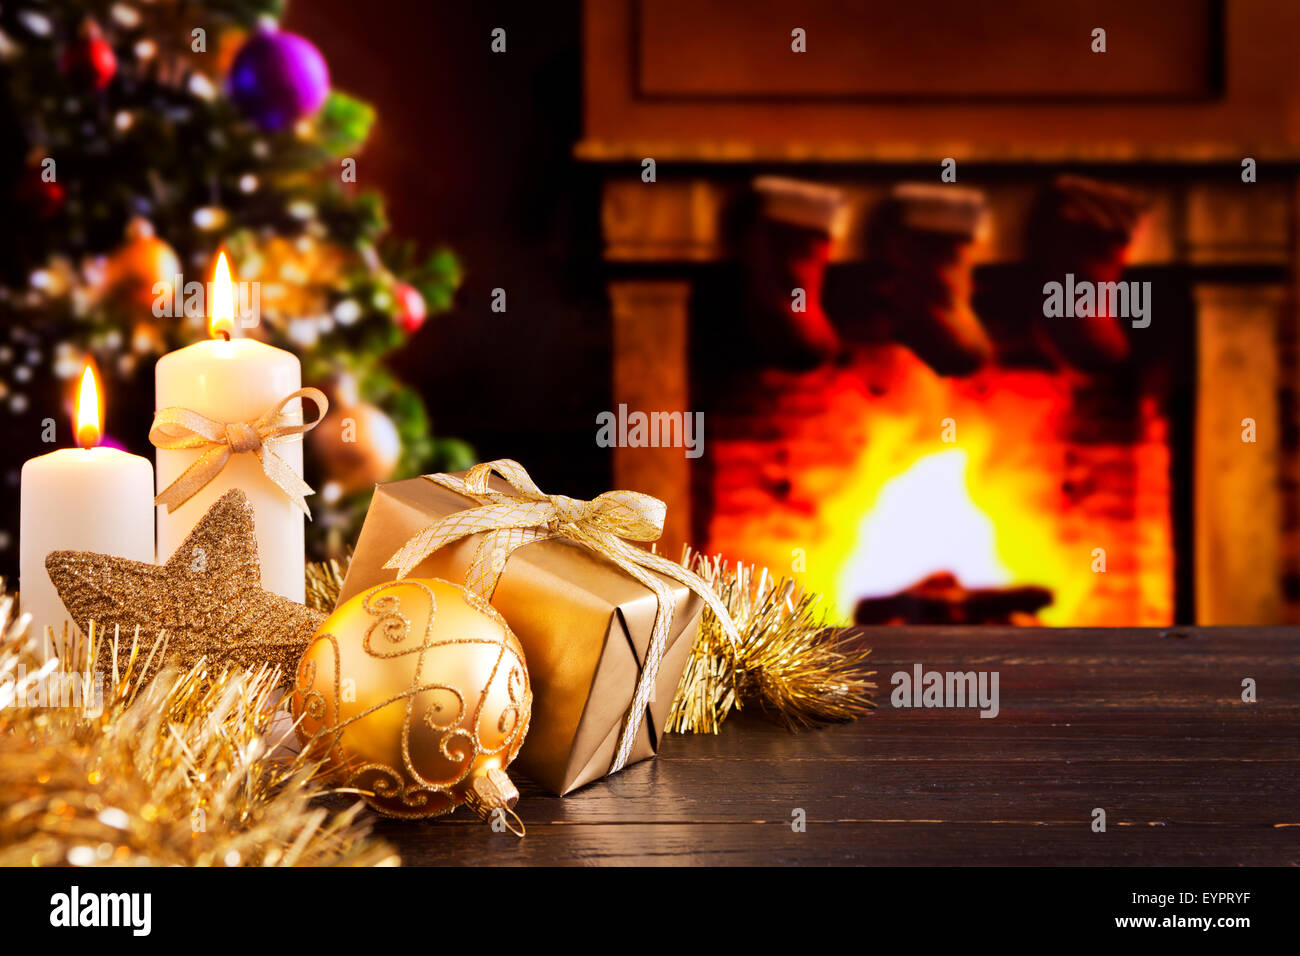 Christmas decorations, a gift and candles in front of a fireplace. A fire is burning in the fireplace. - Stock Image